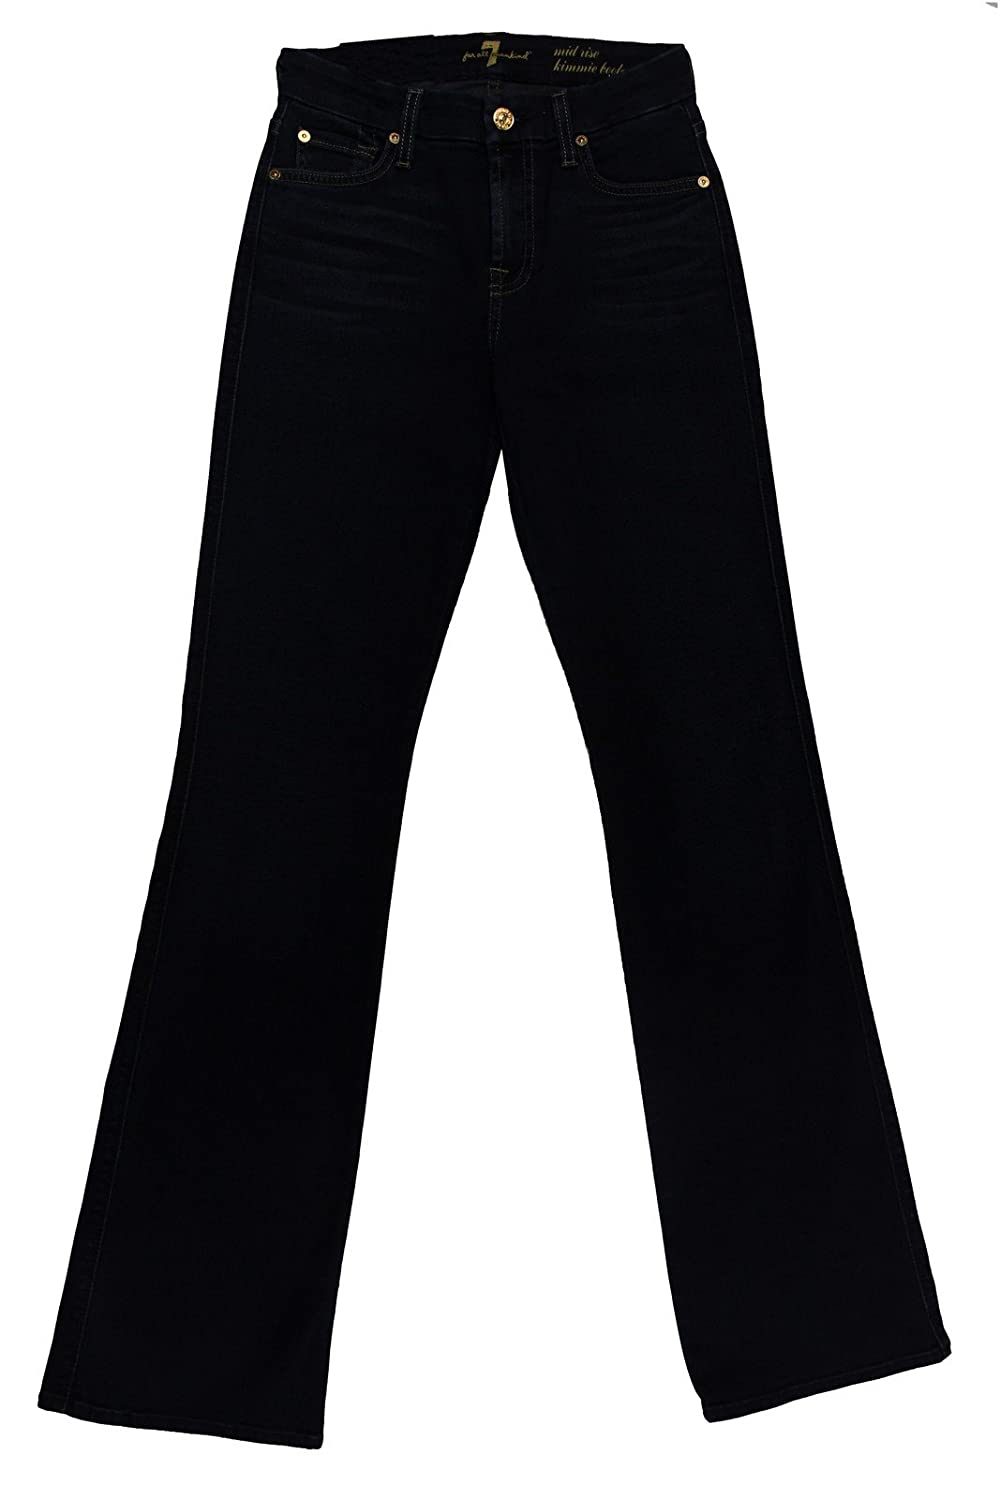 7 For All Mankind Kimmie Bootcut Jean